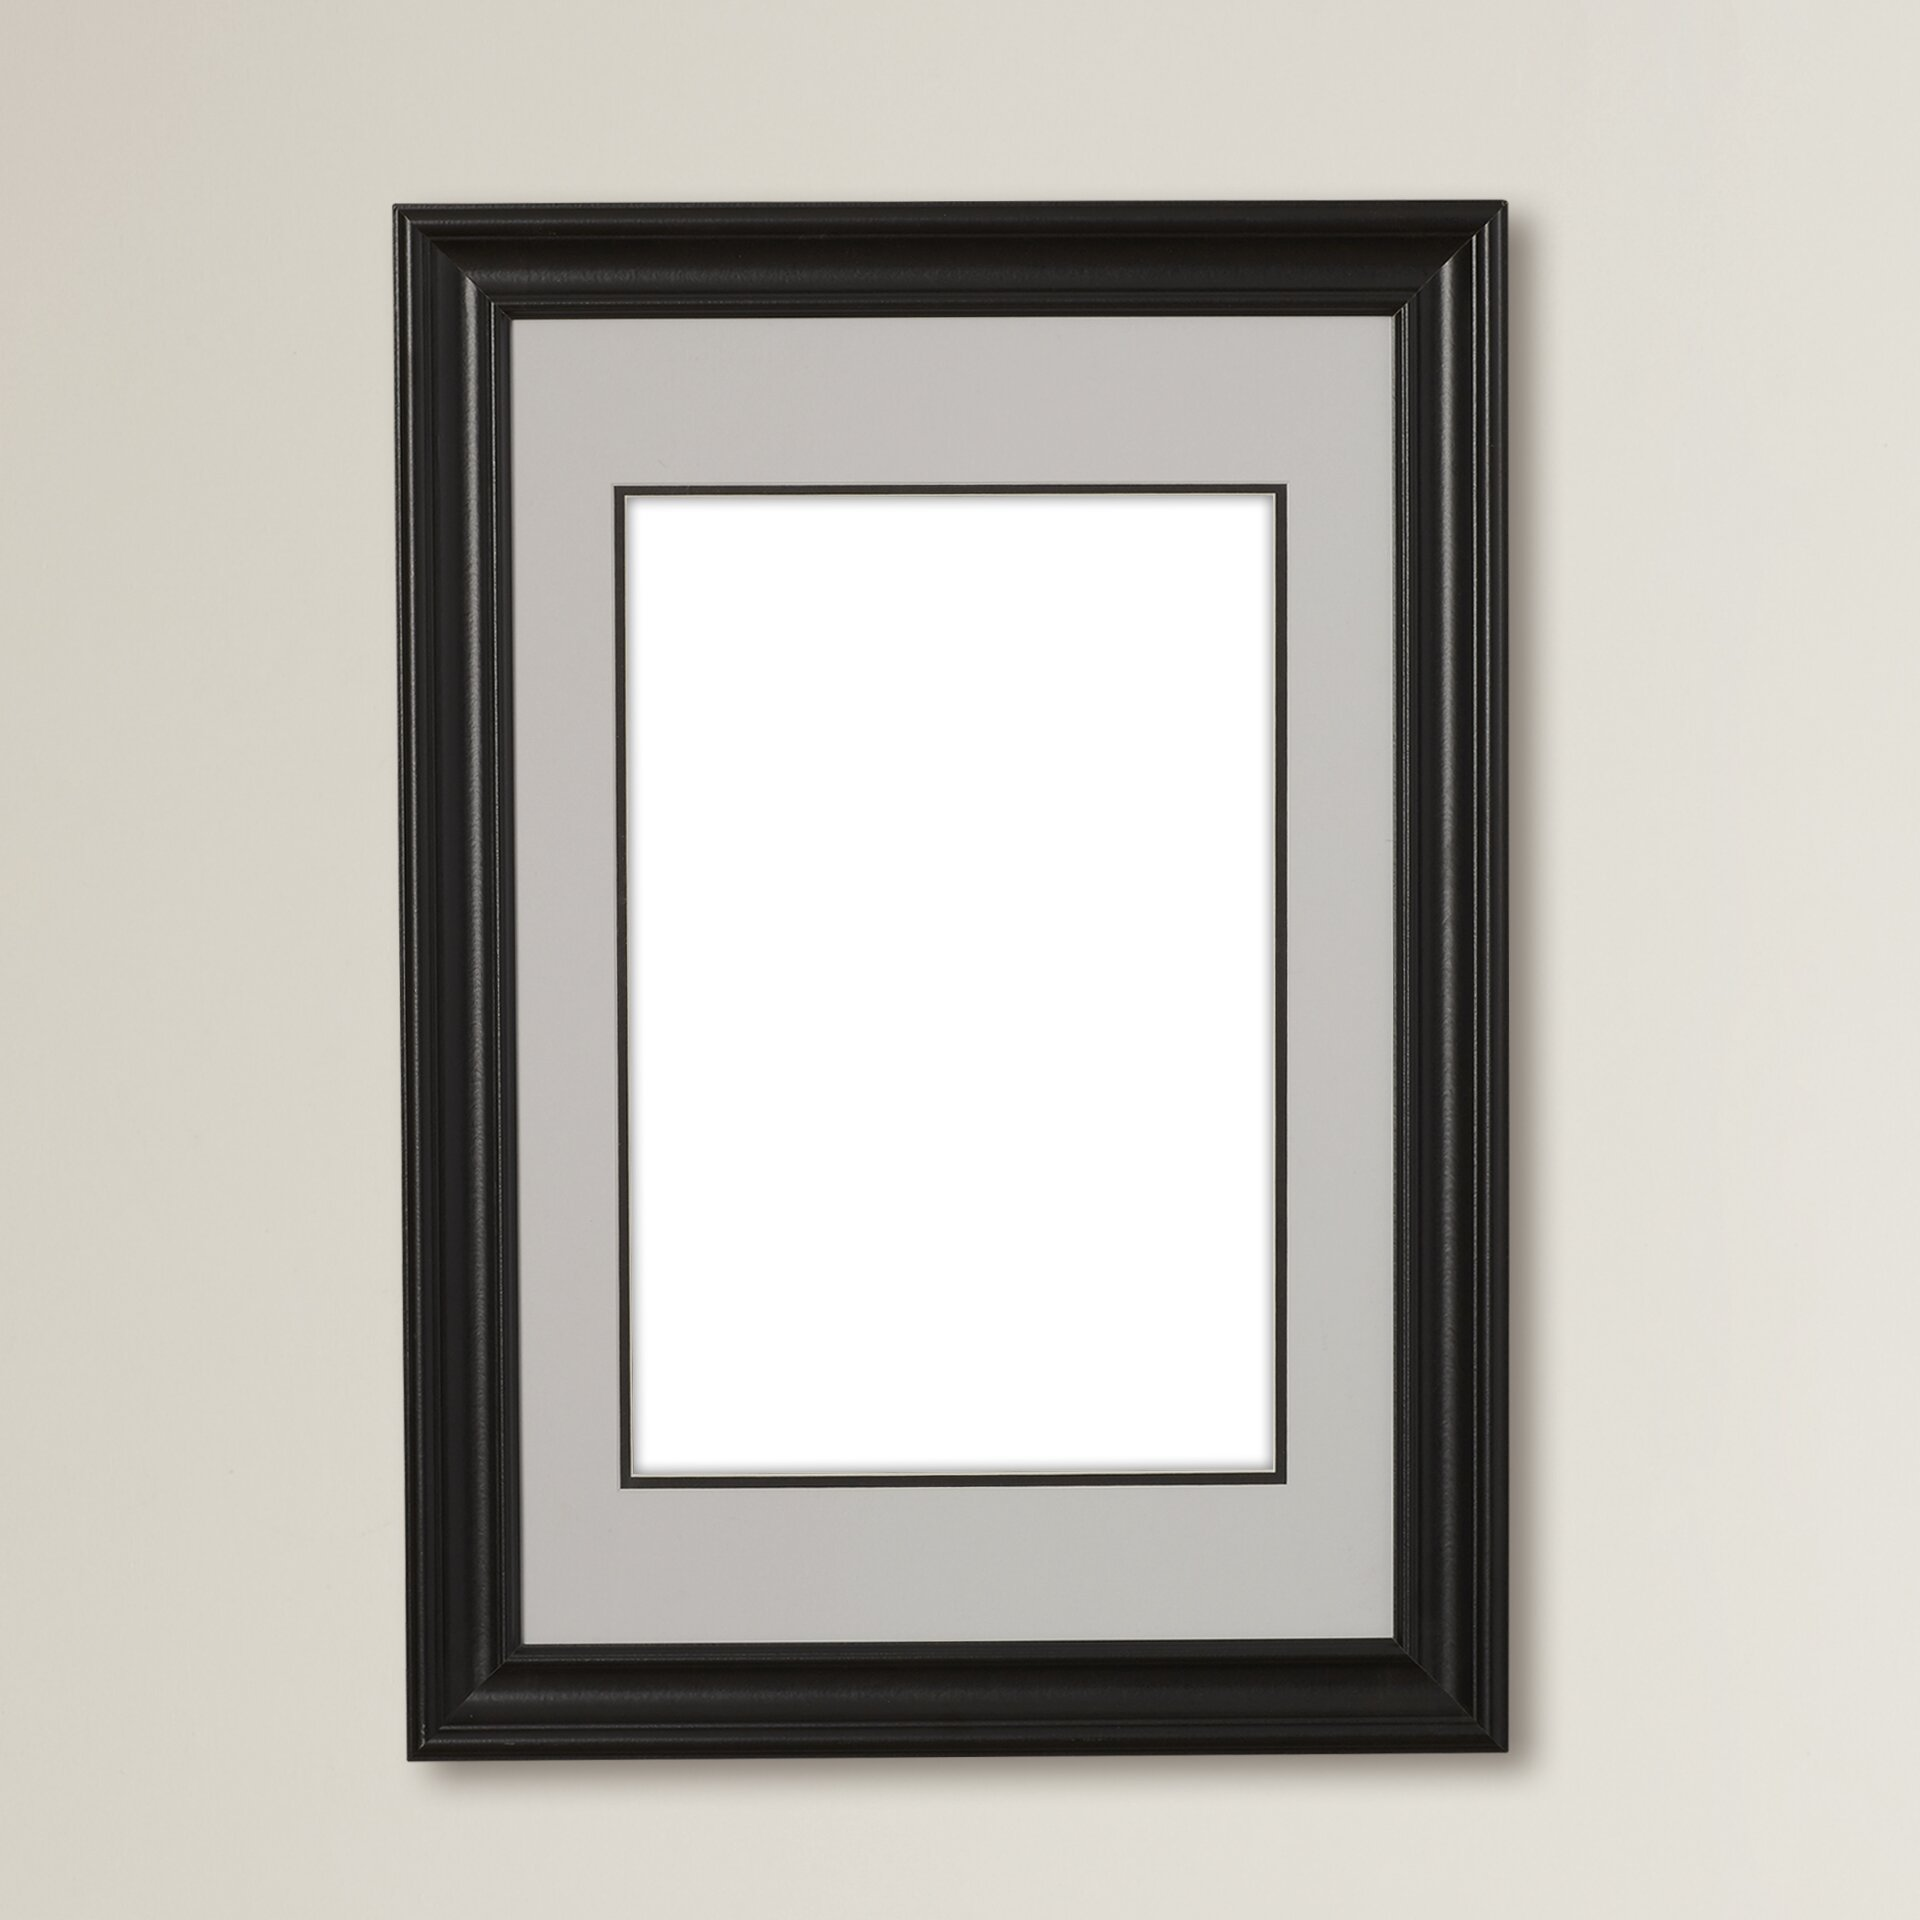 Charlton Home Brodnax Matted Wall Portrait Picture Frame